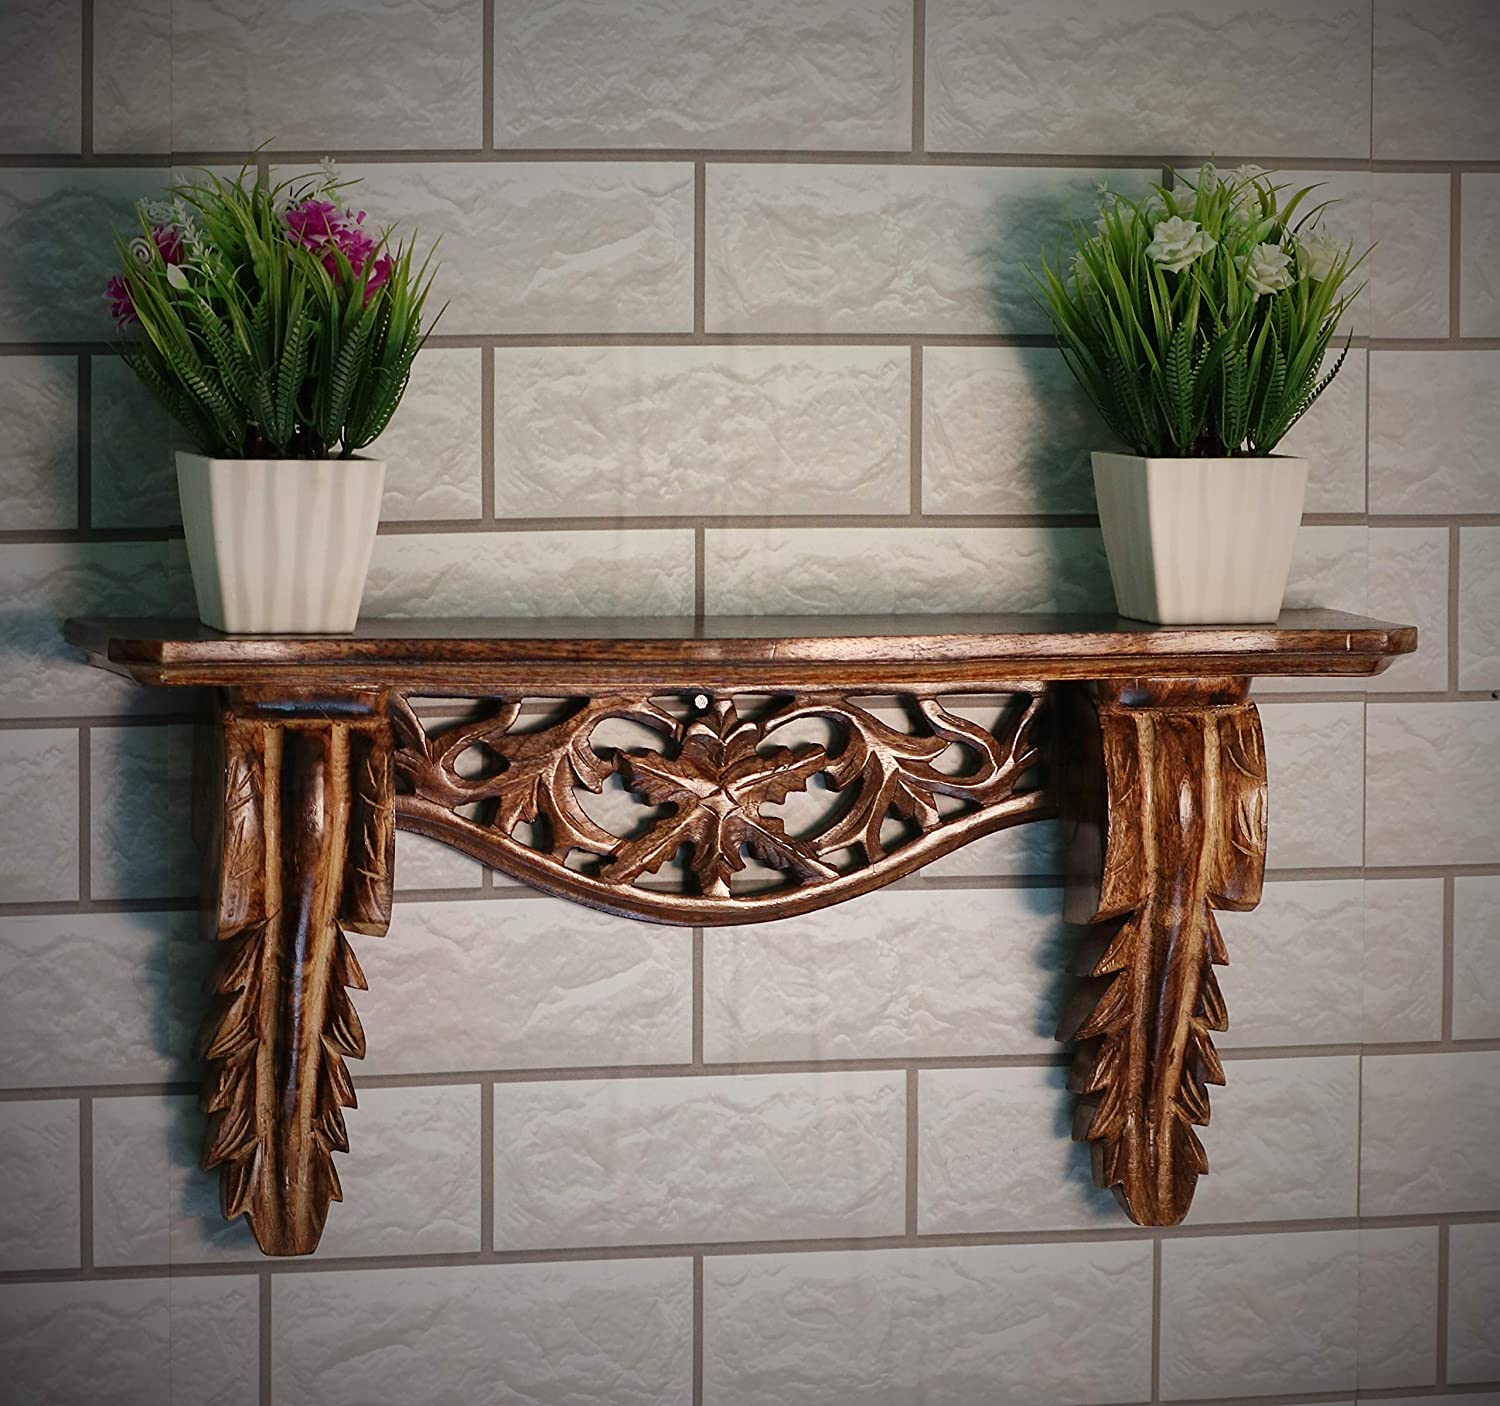 Acchlo wall shelf for living room